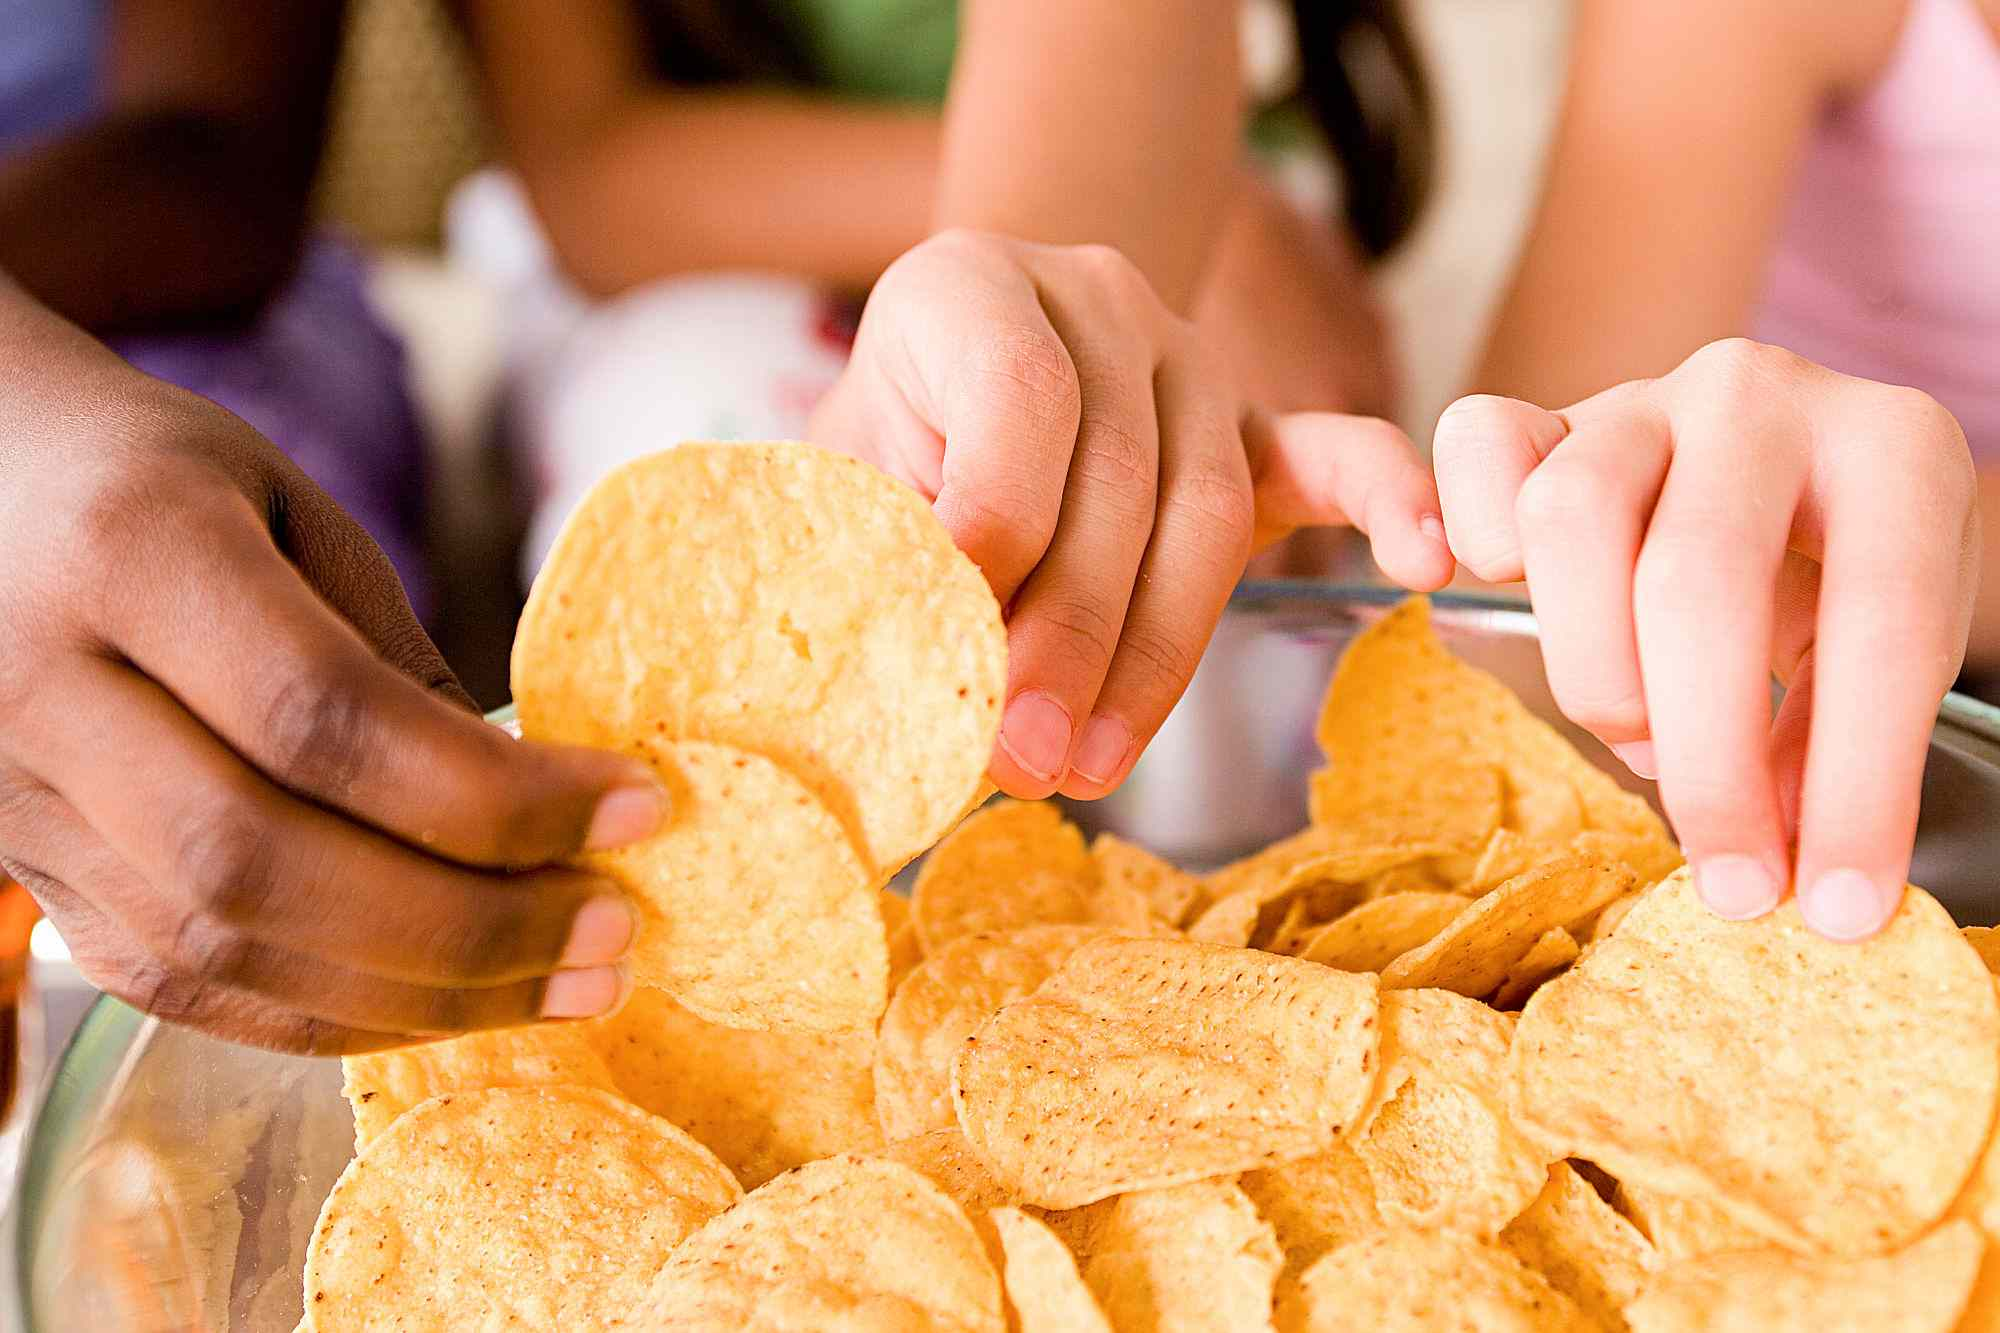 people eating tortilla chips